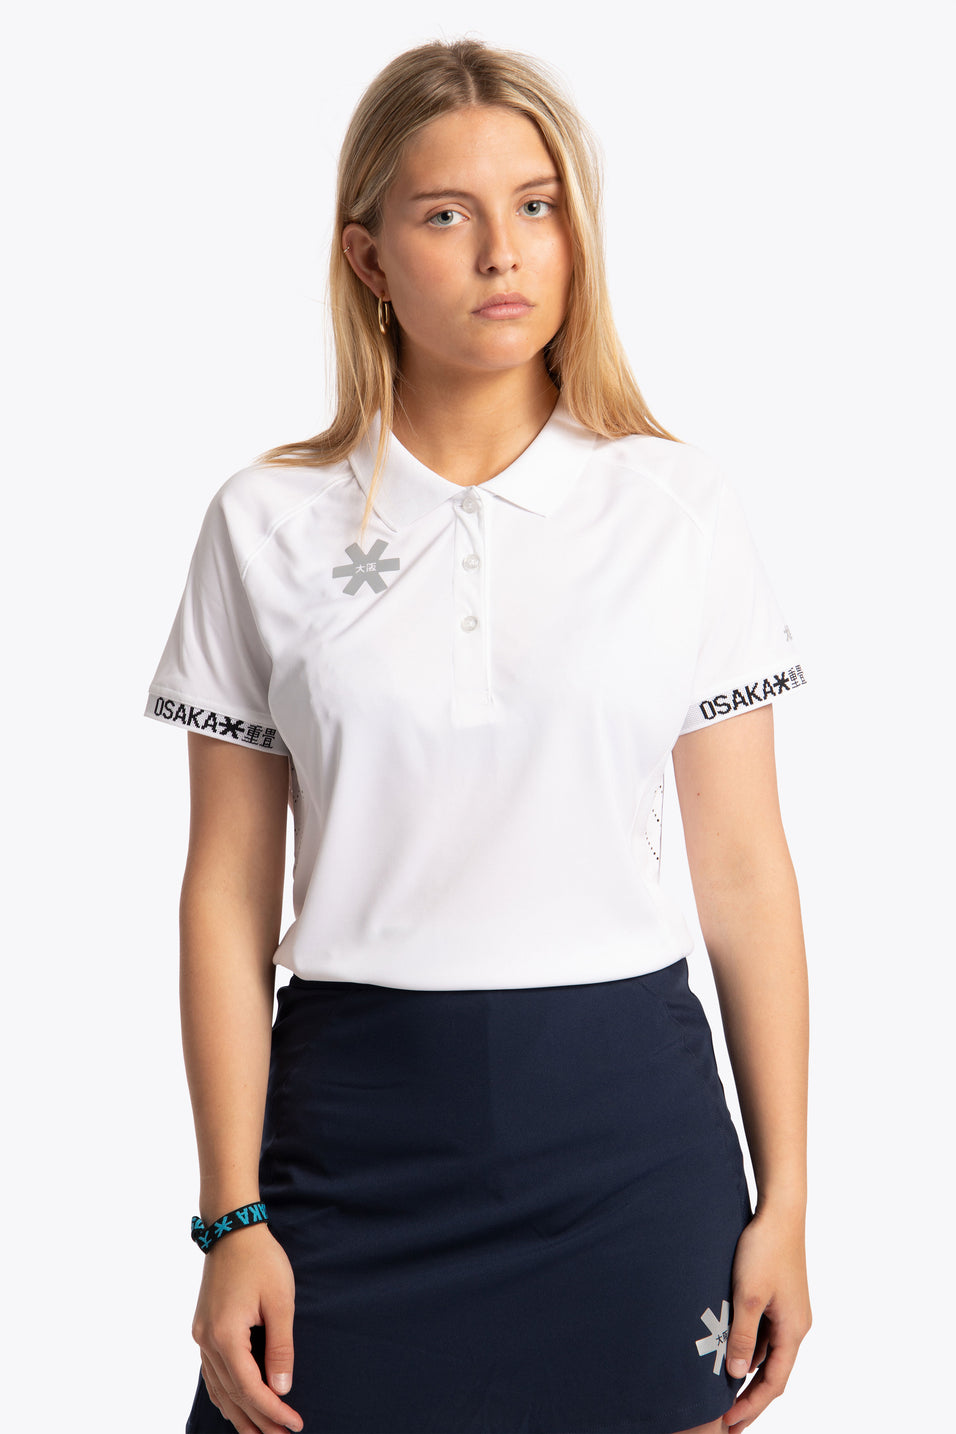 Osaka women polo jersey white